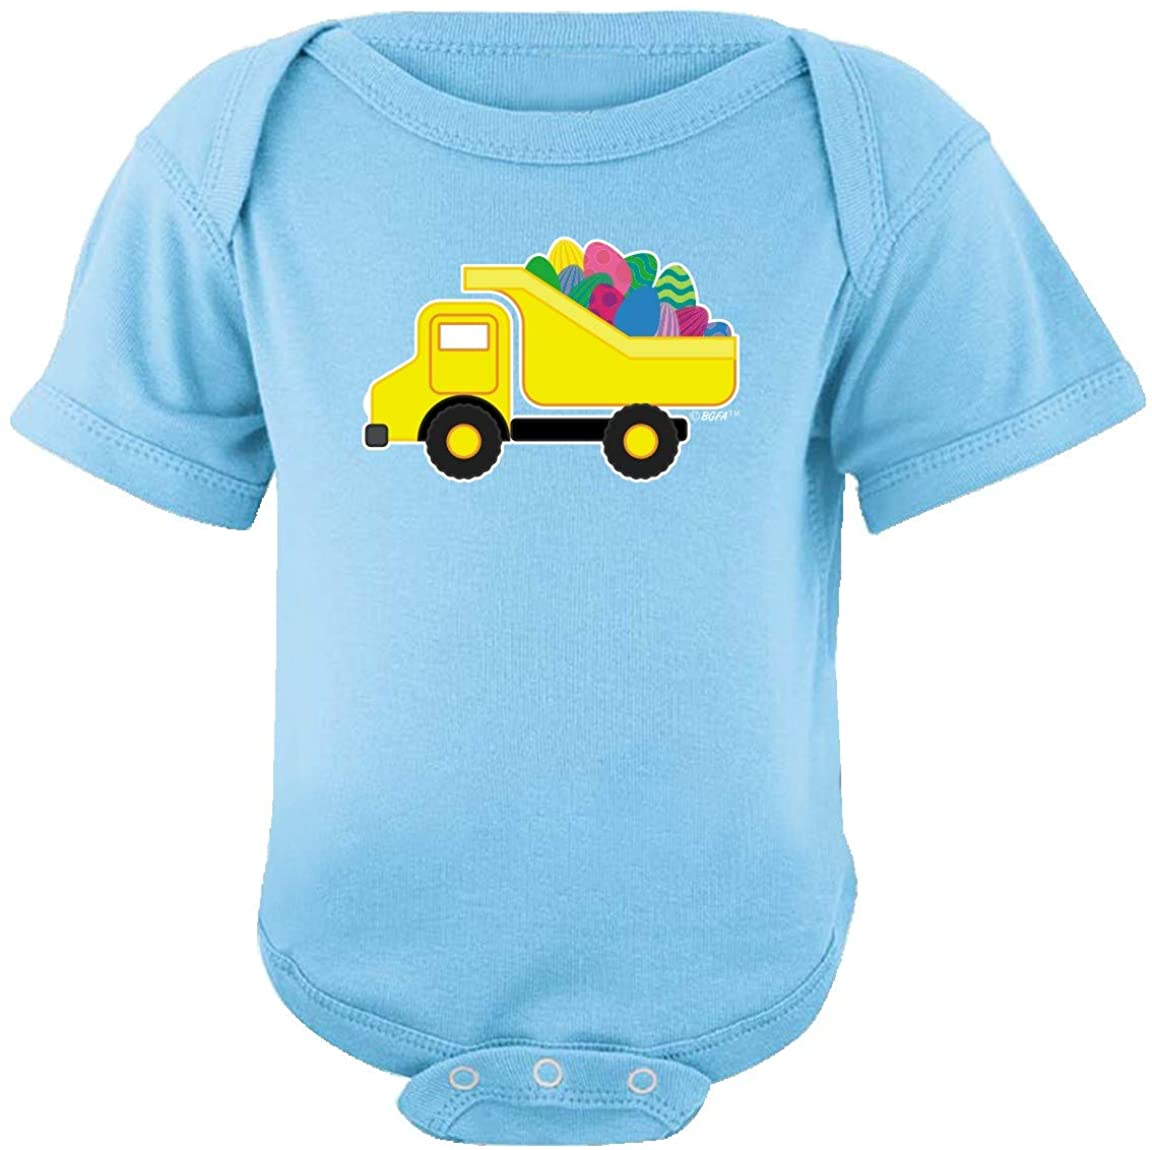 Baby Gifts For All Easter Outfit Easter Eggs Dump Truck Bodysuit